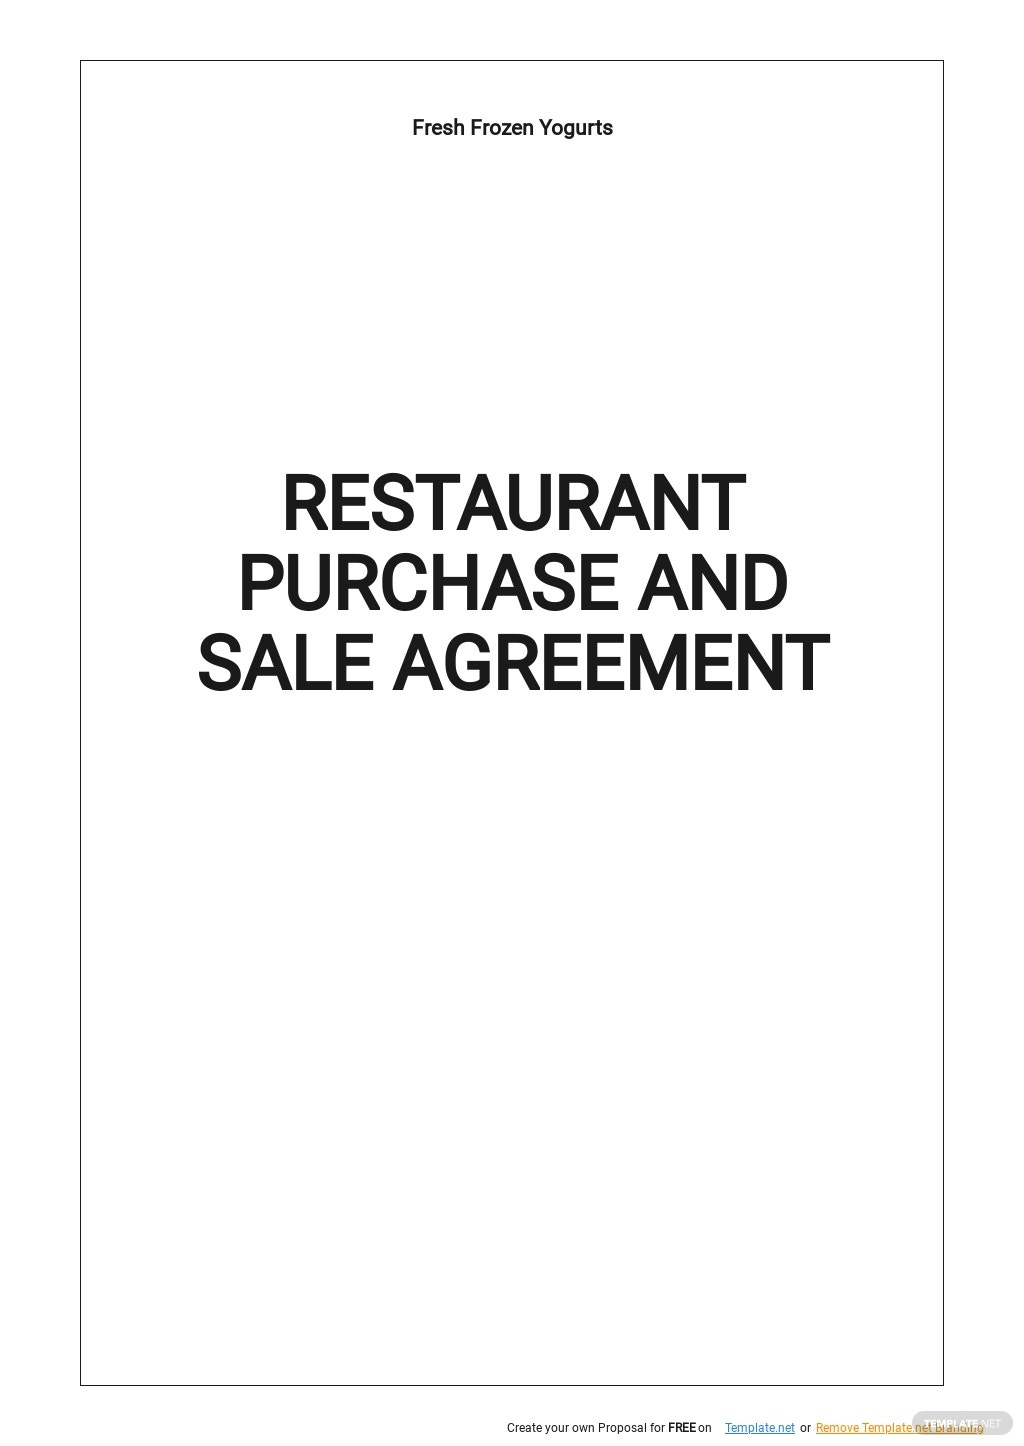 Restaurant Purchase and Sale Agreement Template.jpe